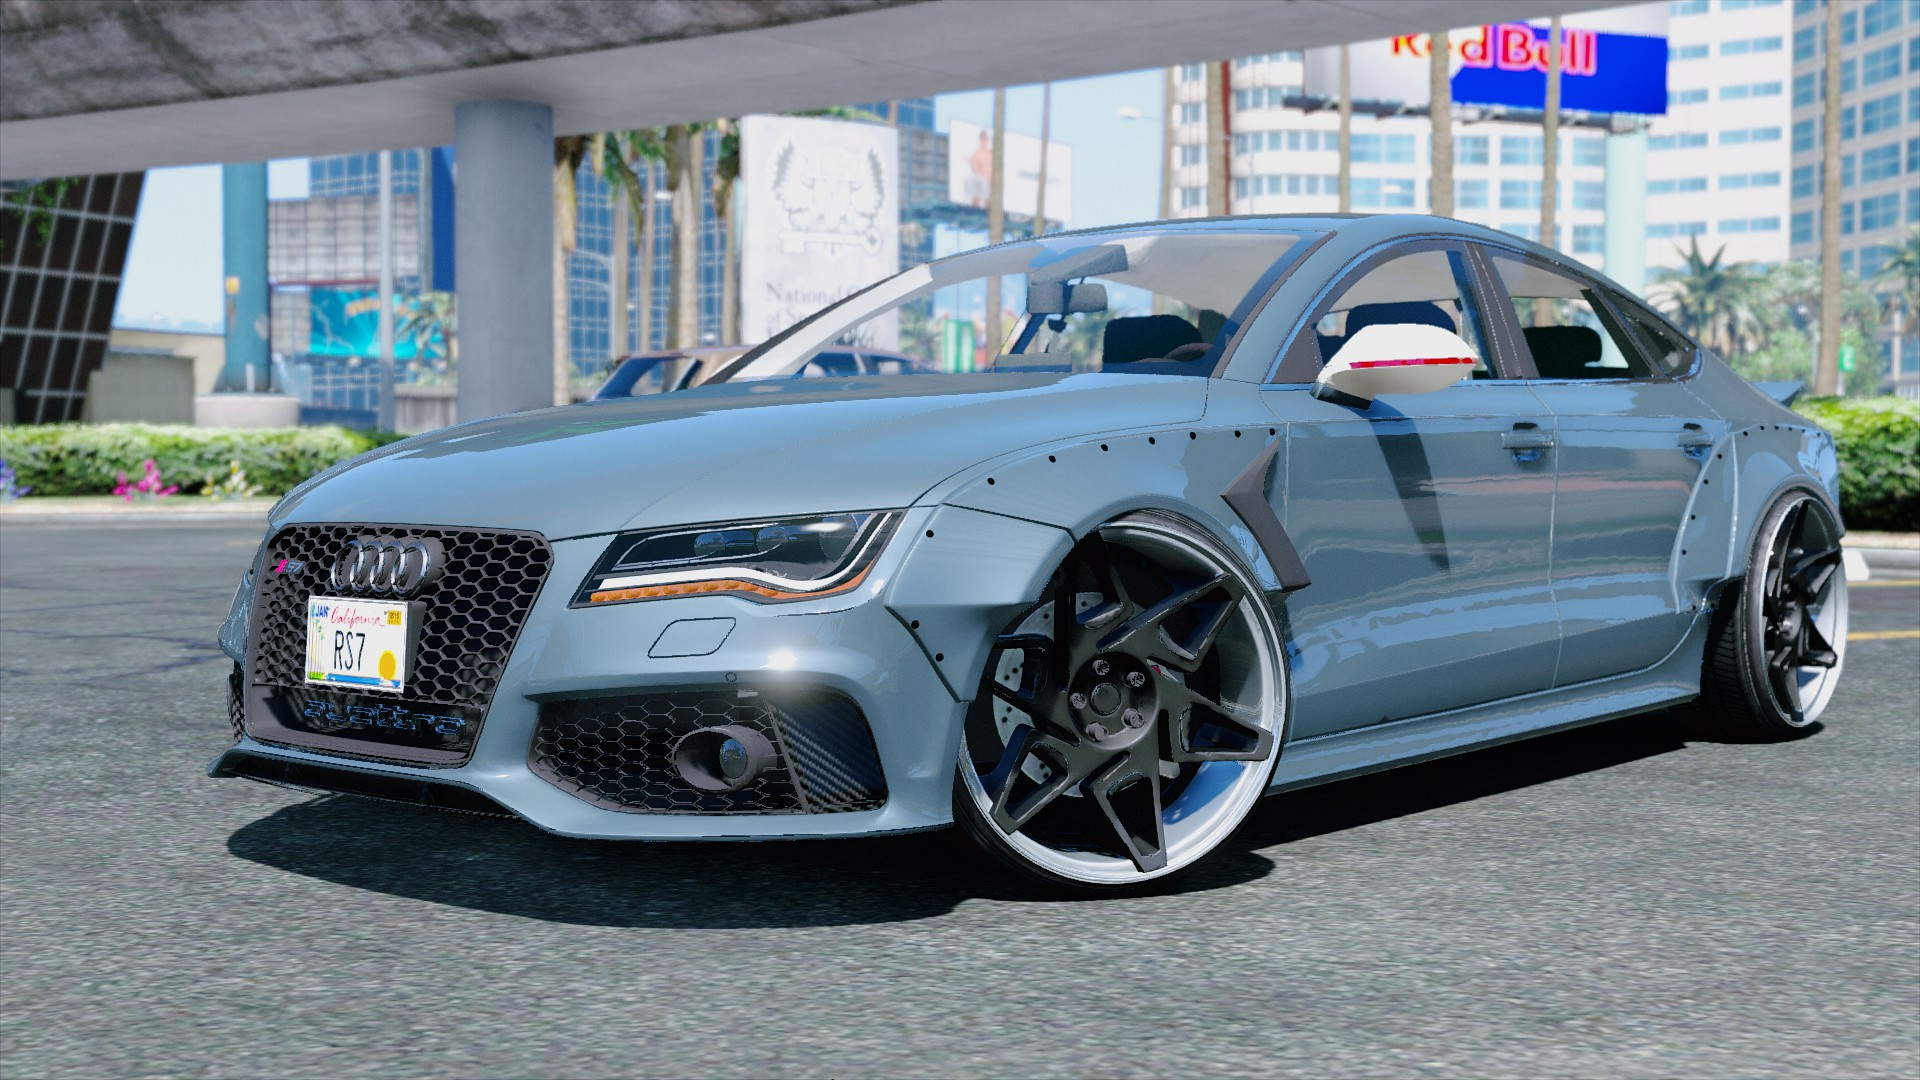 Gta Car Wallpaper Audi Rs7 X Uk Gta5 Mods Com